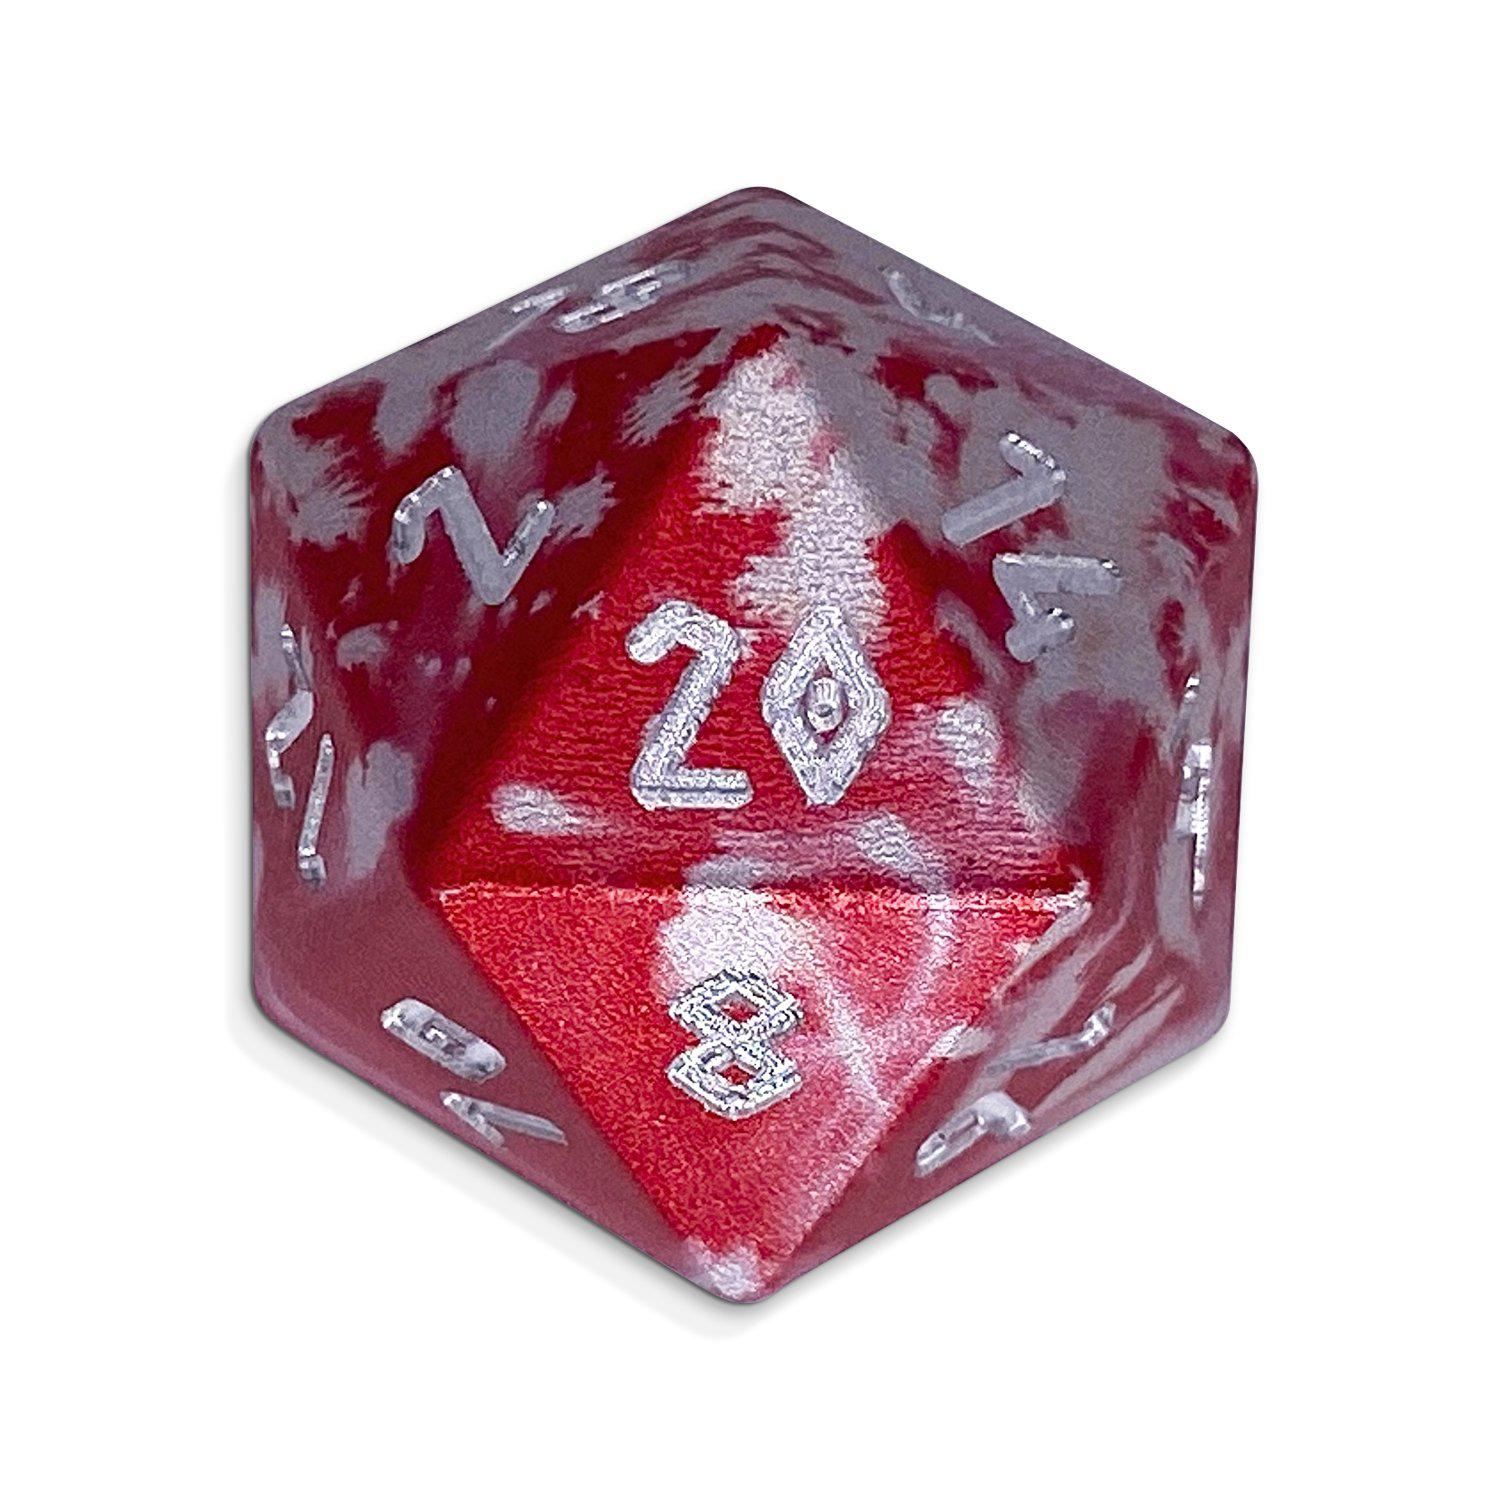 Single Wondrous Dice® D20 in Sneak Attack by Norse Foundry® 6063 Aircraft Grade Aluminum